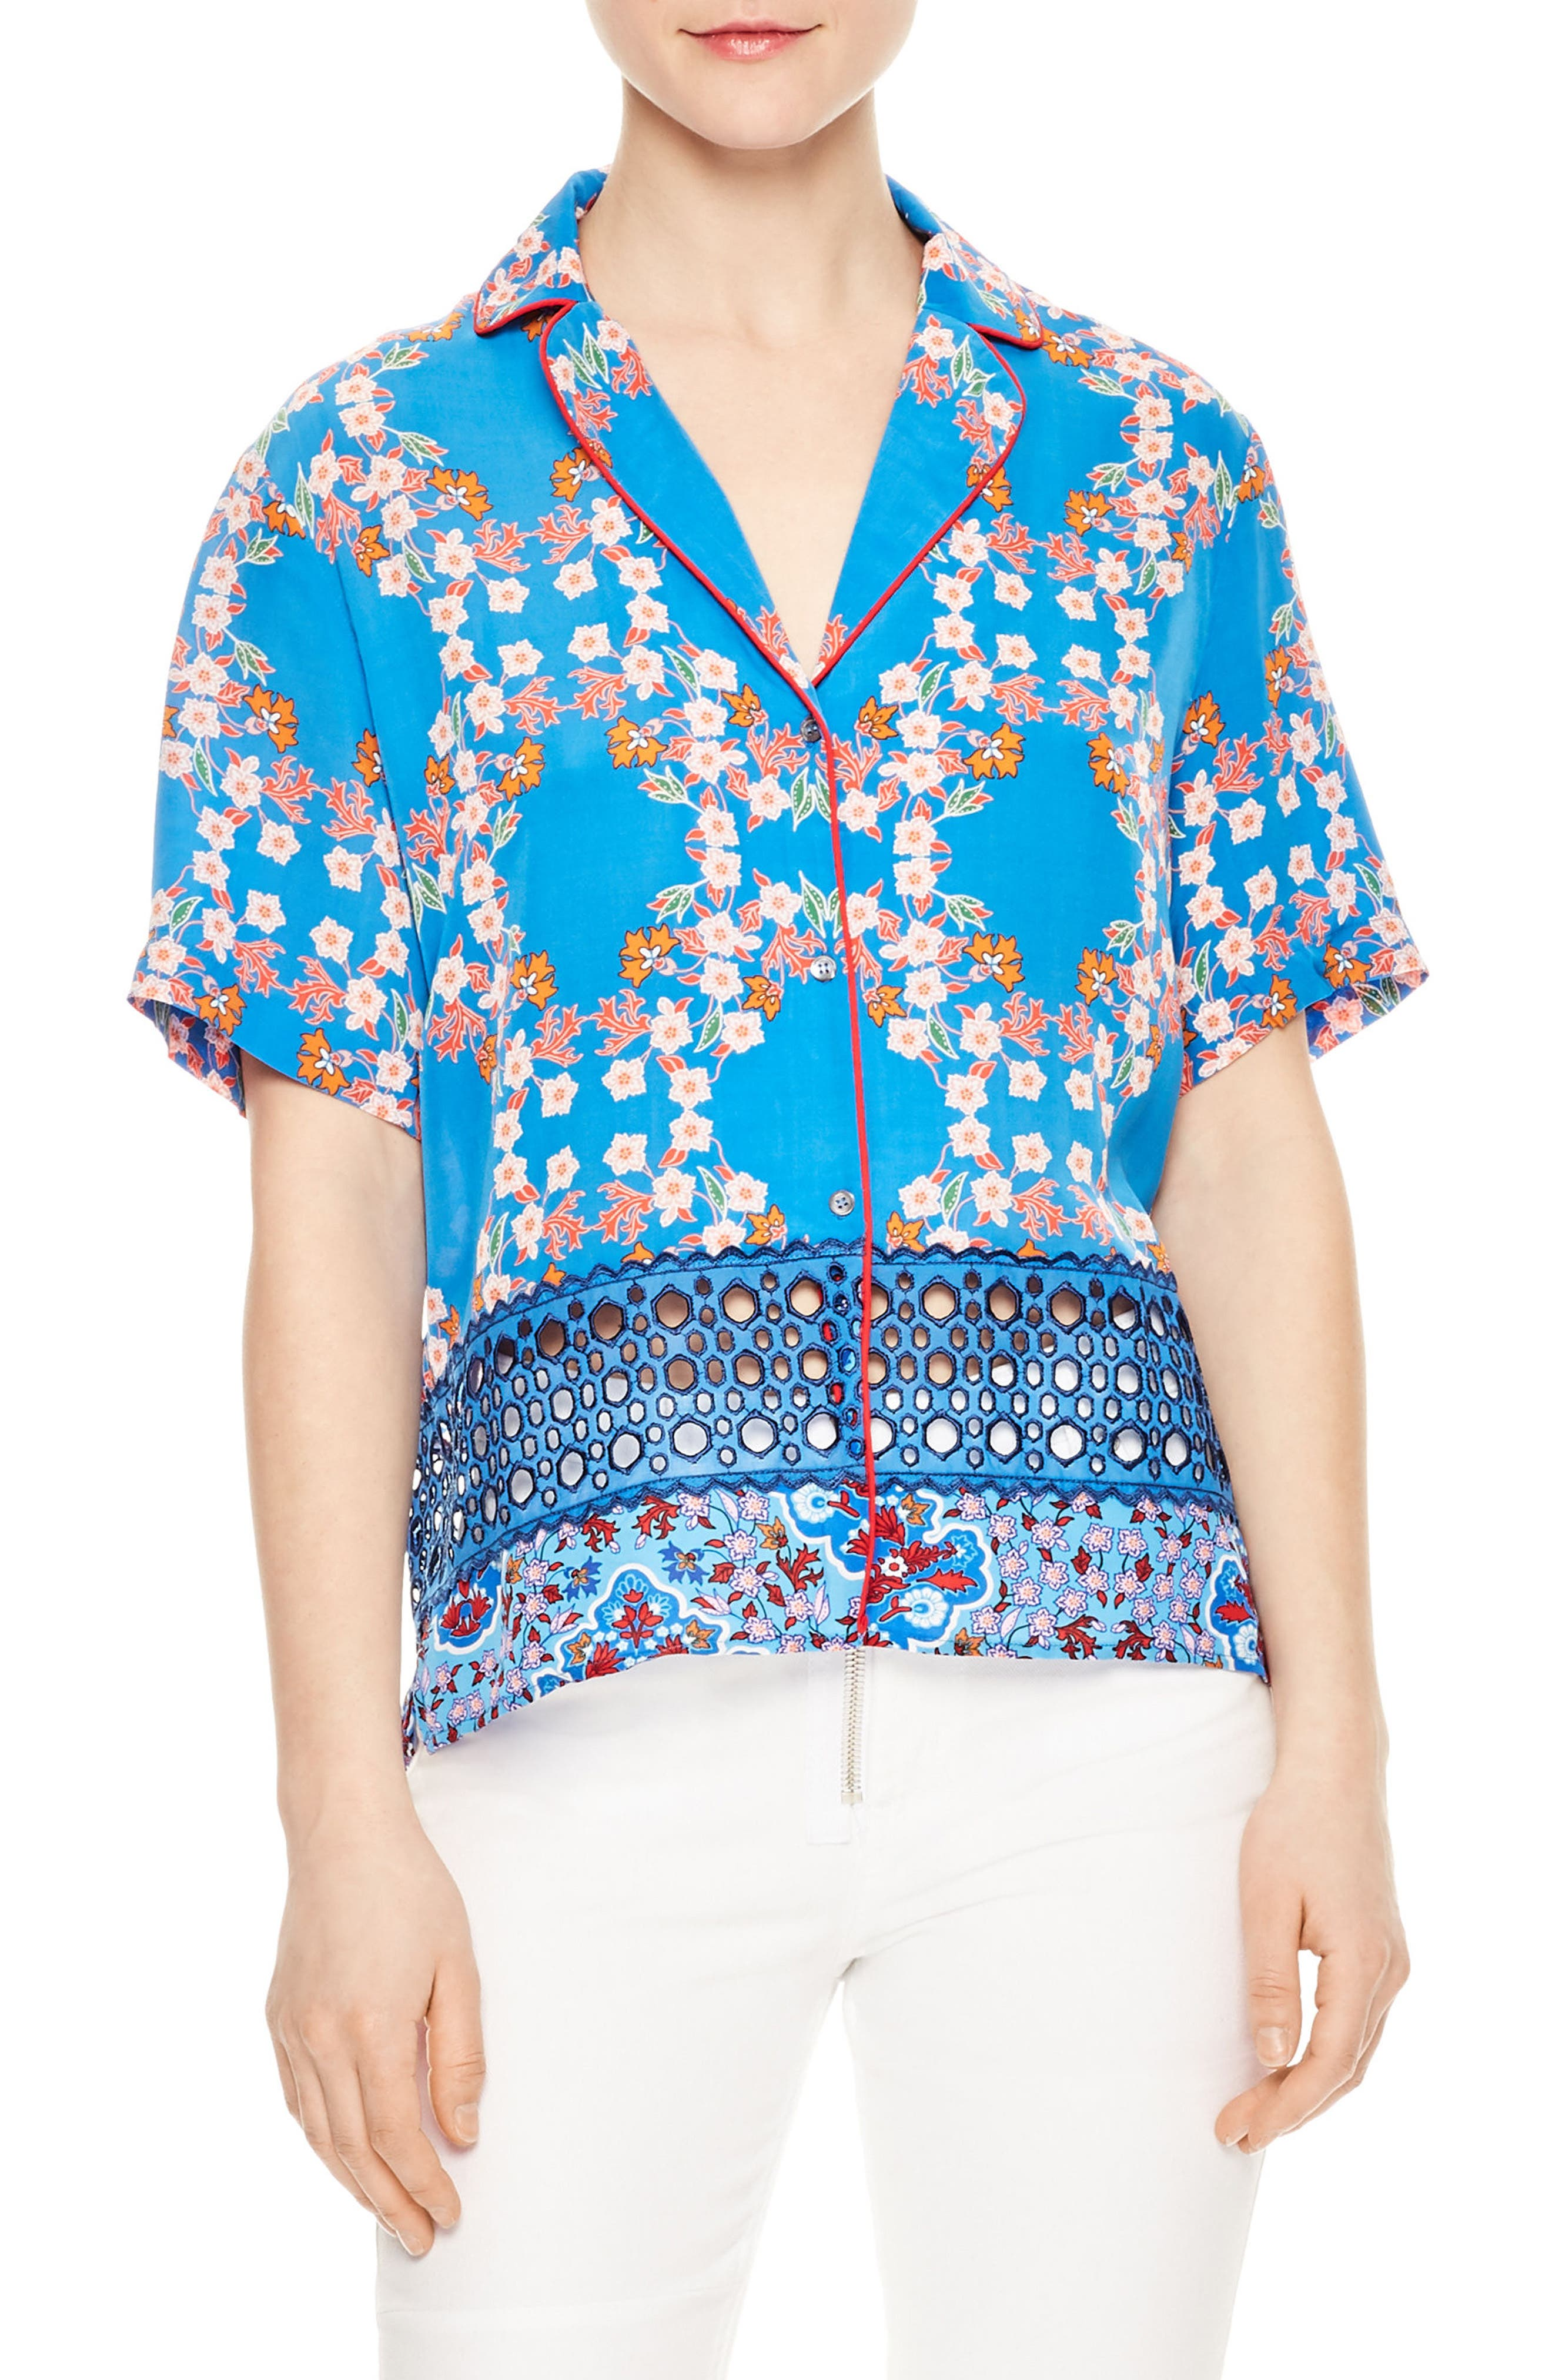 Eyelet Inset Floral Top,                         Main,                         color, 400